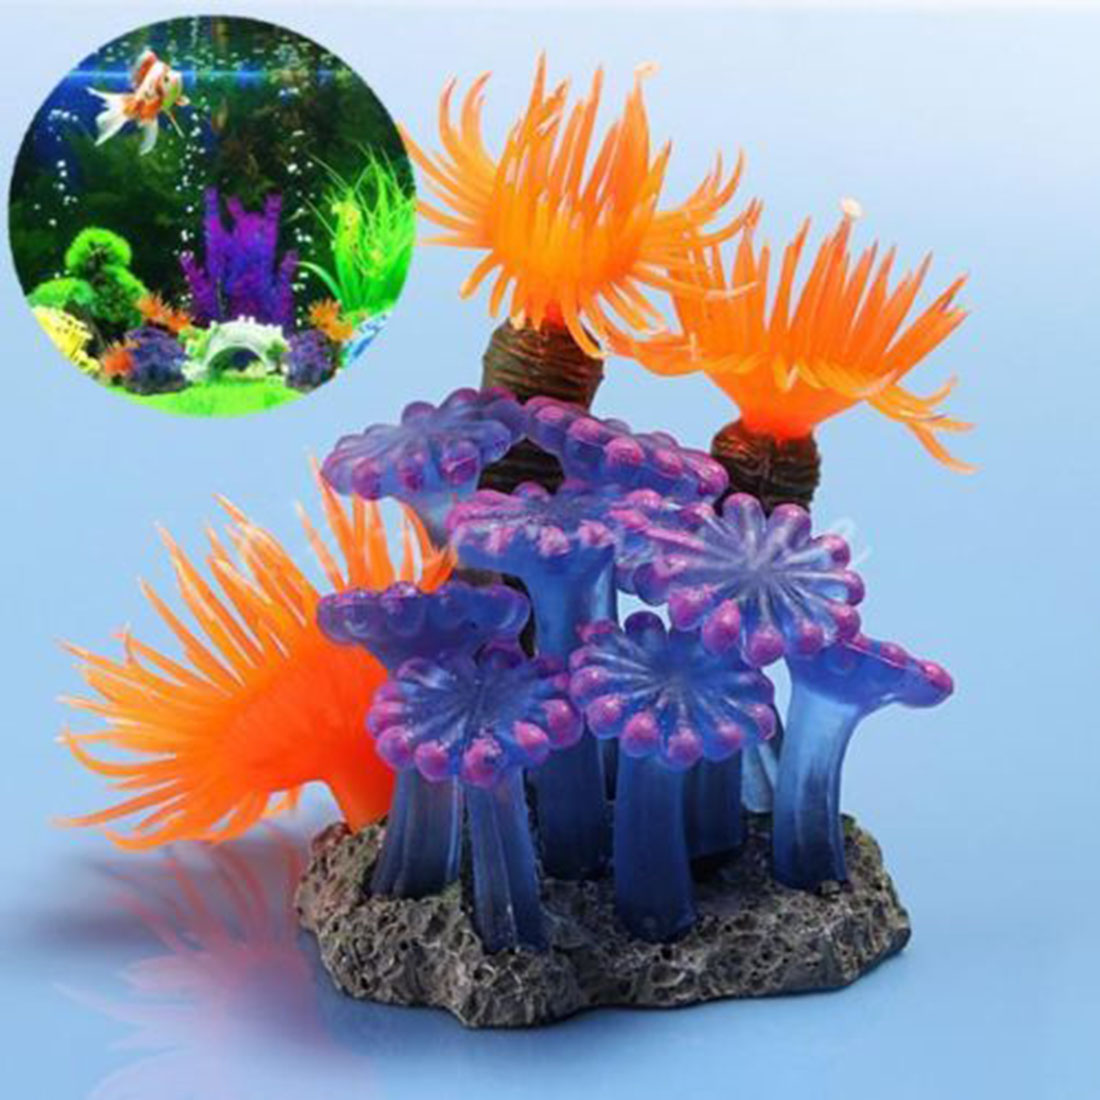 High Quality Artificial Resin Fish Tank Decor Underwater Underwater Coral Aquarium Multi-Color